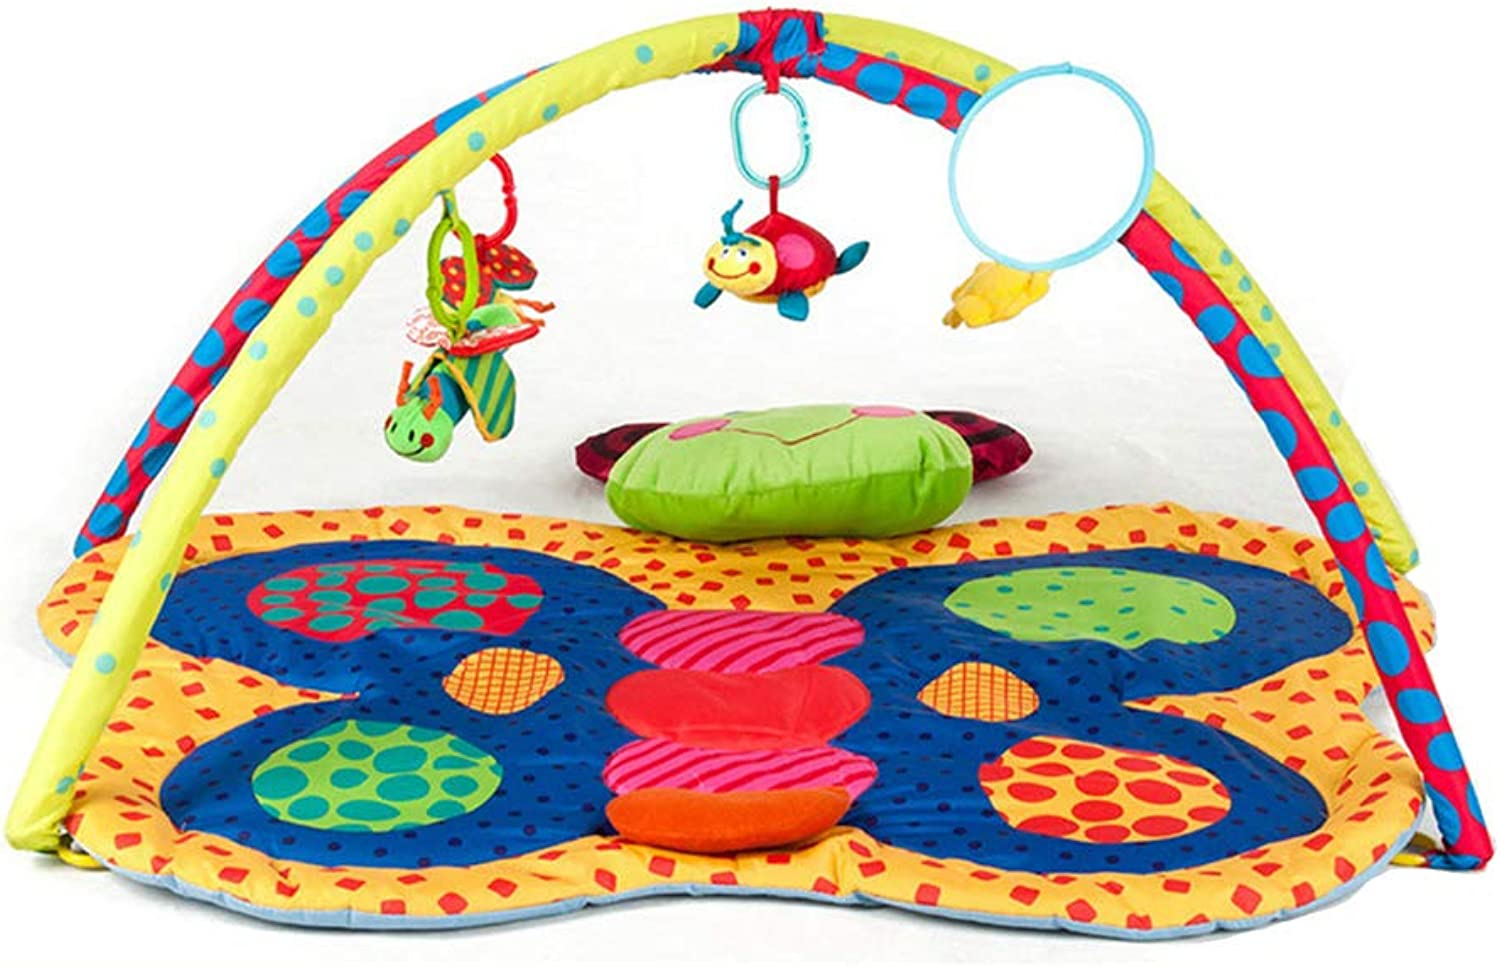 Portable Crib Baby Furniture Folding Oversized Crawling Game Mat for 0-2 Years Old for Bedroom Travel Entertainment Puzzle Fitness Bed